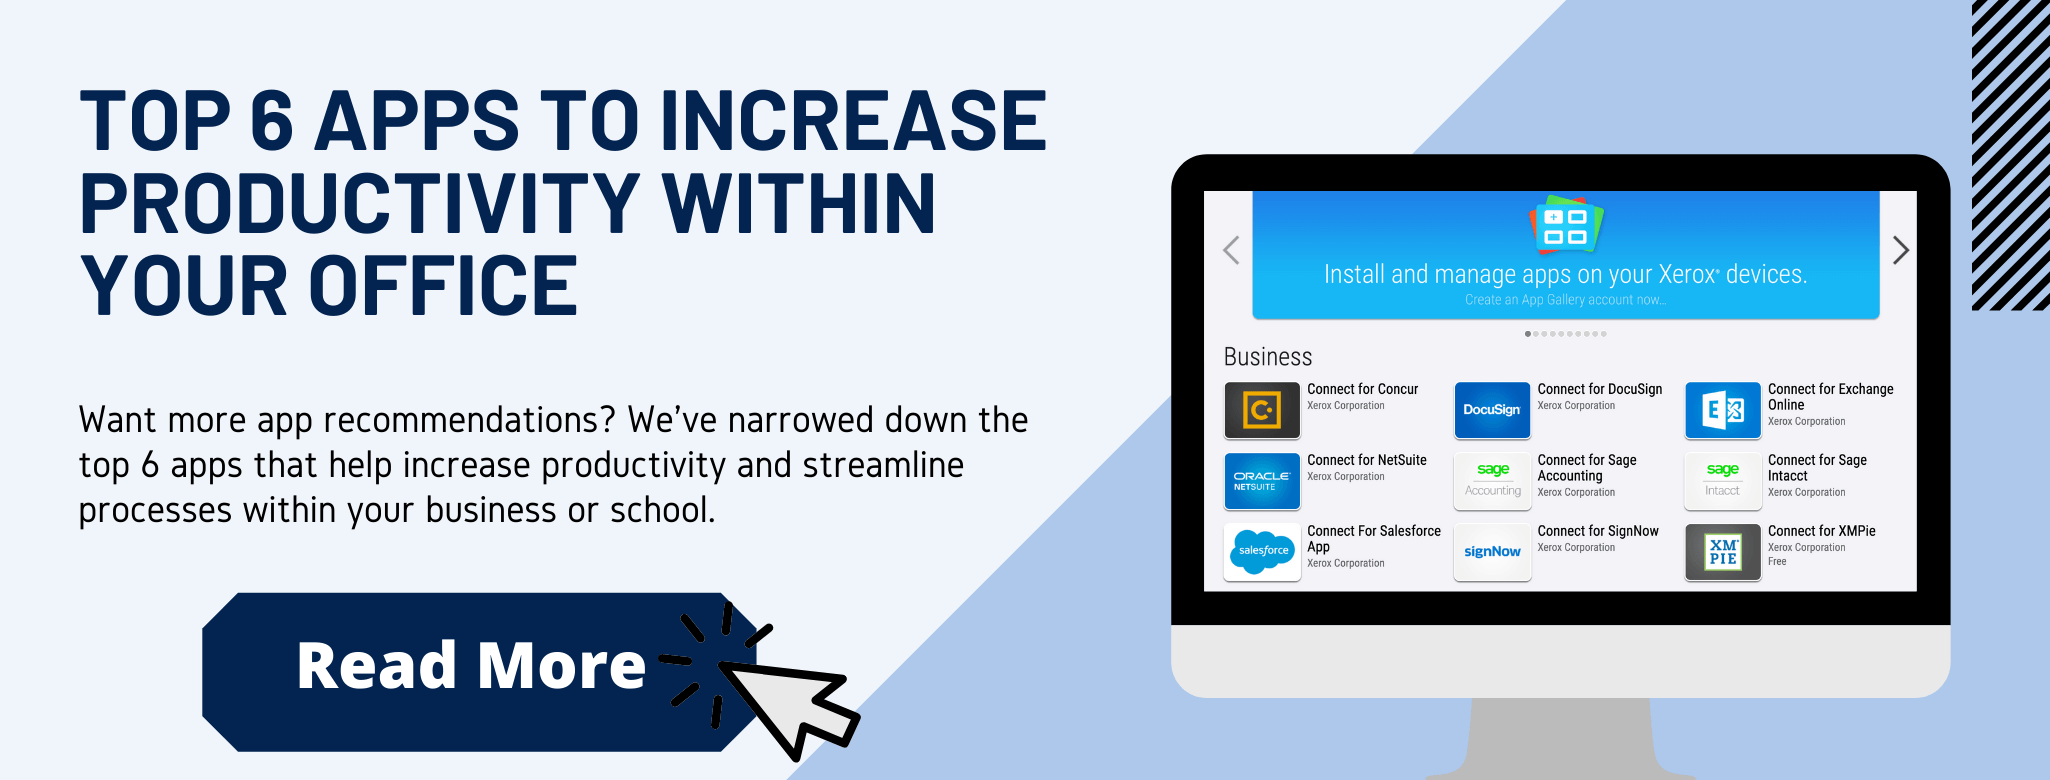 Infographic: Top 6 apps to increase productivity